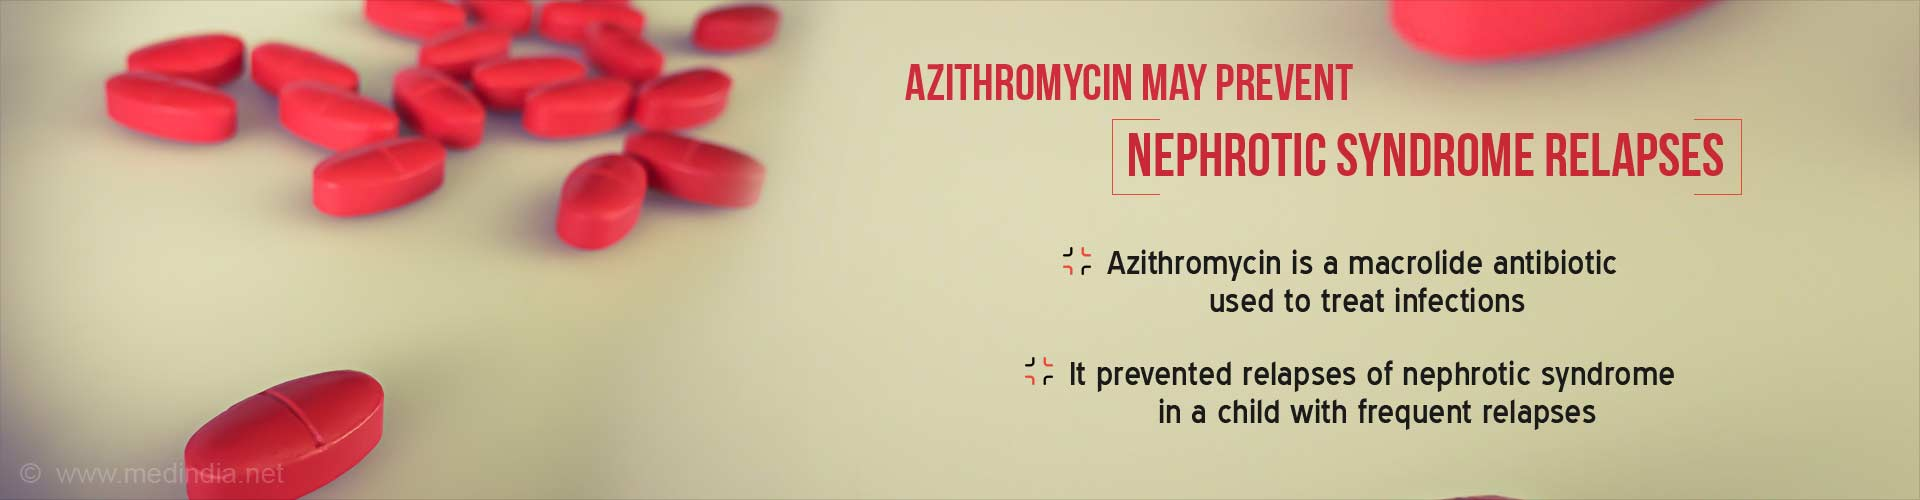 Azithromycin may prevent nephrotic syndrome relapses